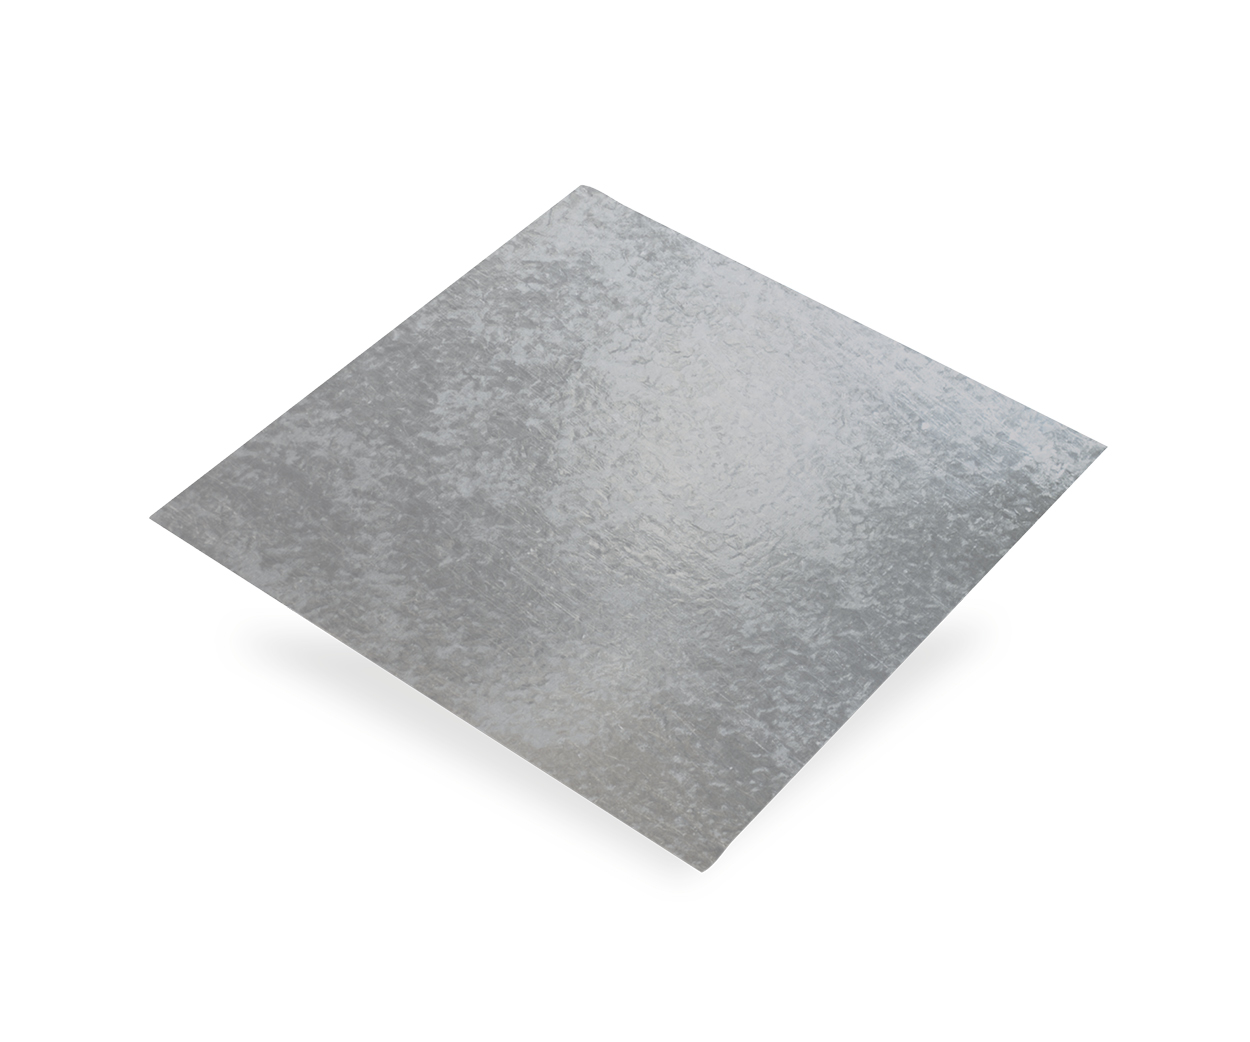 Galvanized steel 1